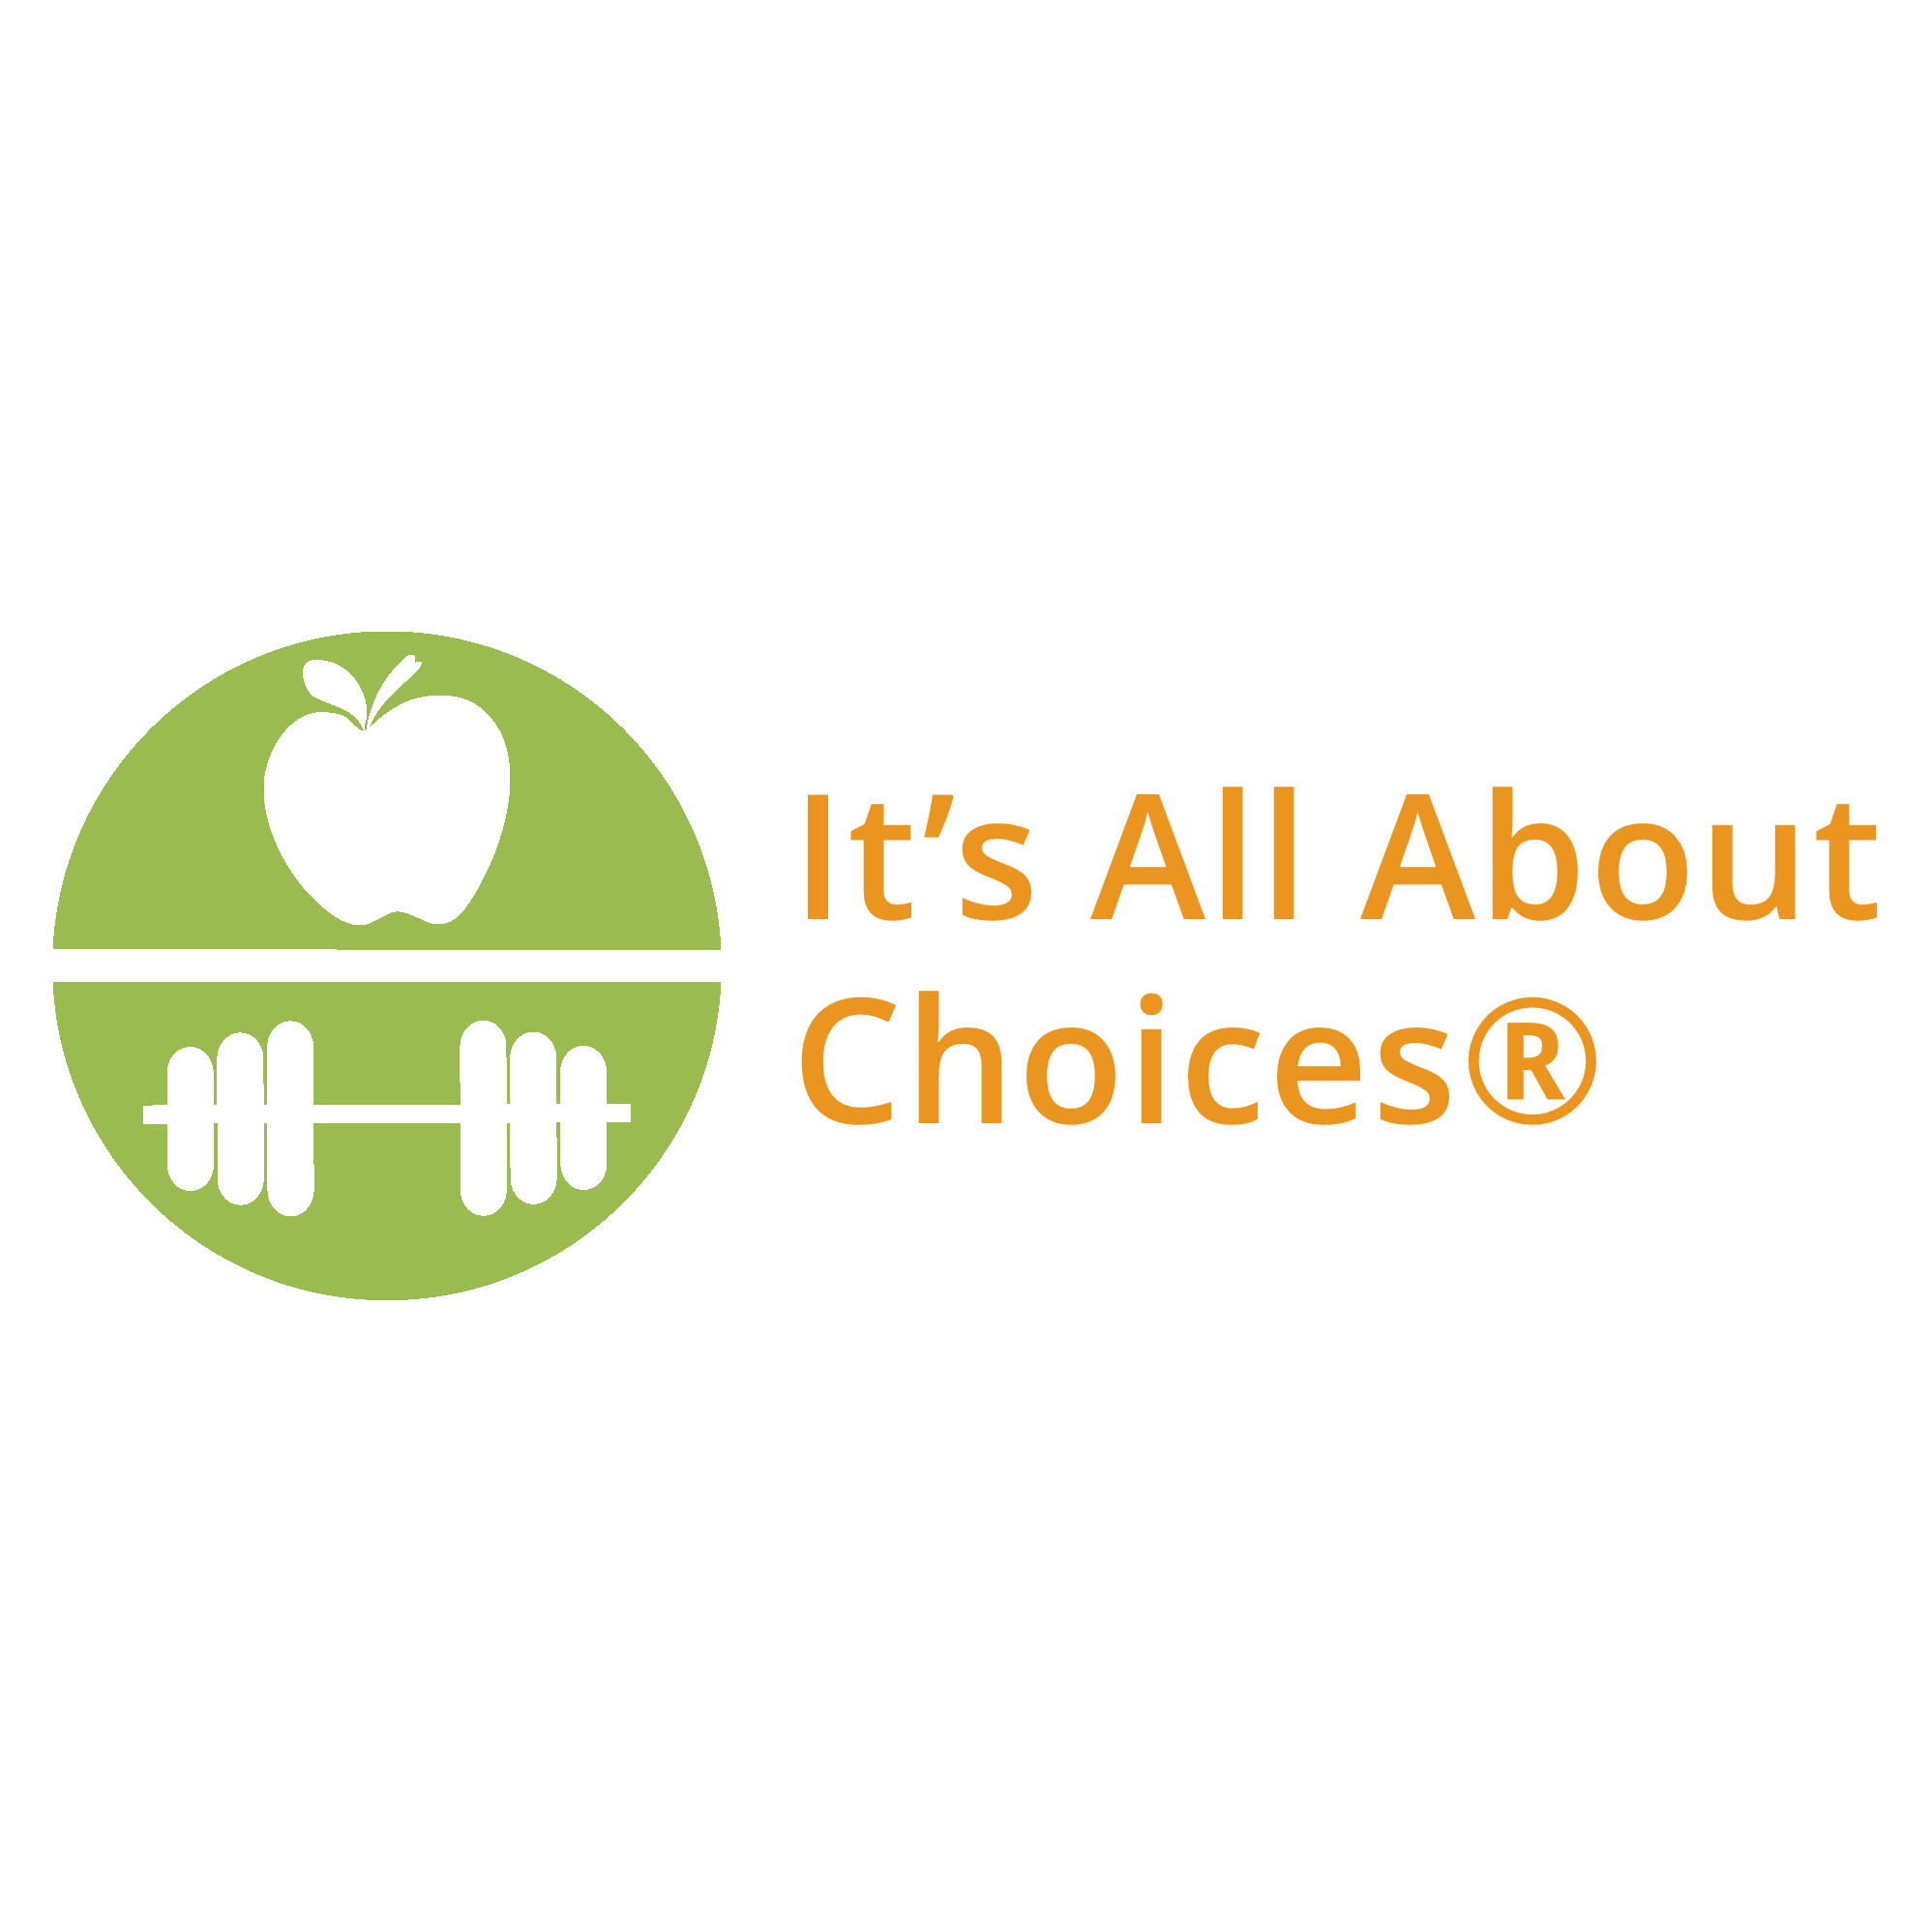 It's All About Choices - Nutrition & Weight Loss image 4